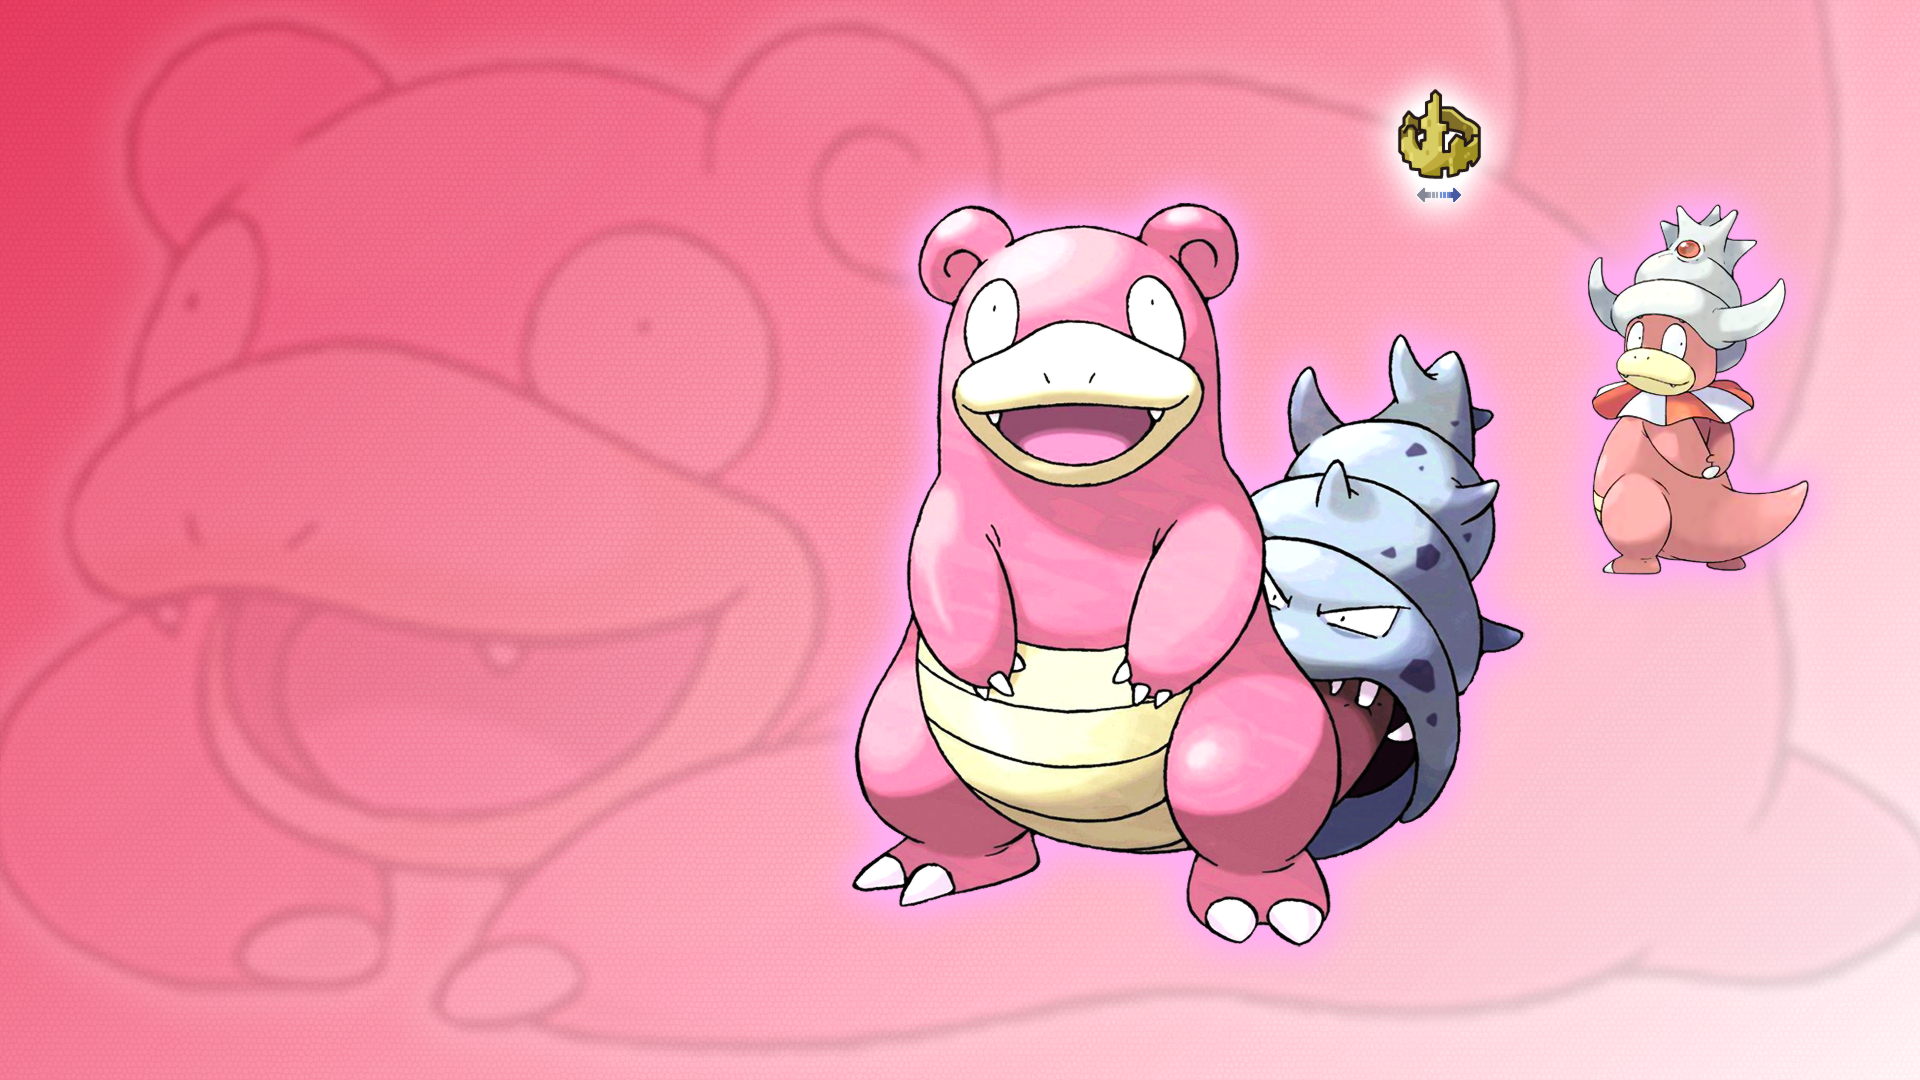 Slowpoke, Slowbro and Slowking Wallpaper by Glench on ...